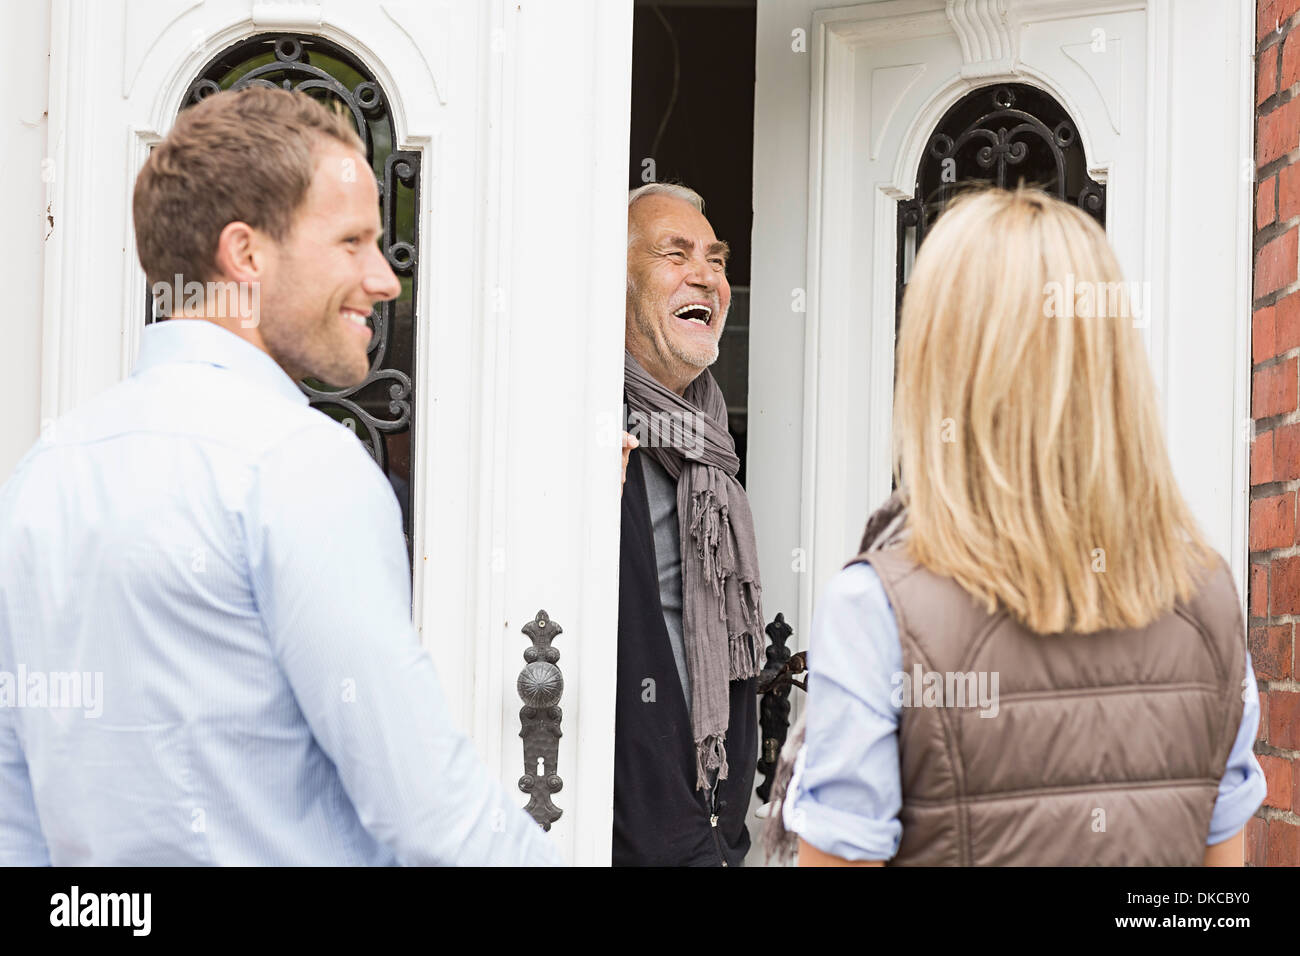 Father opening front door laughing - Stock Image